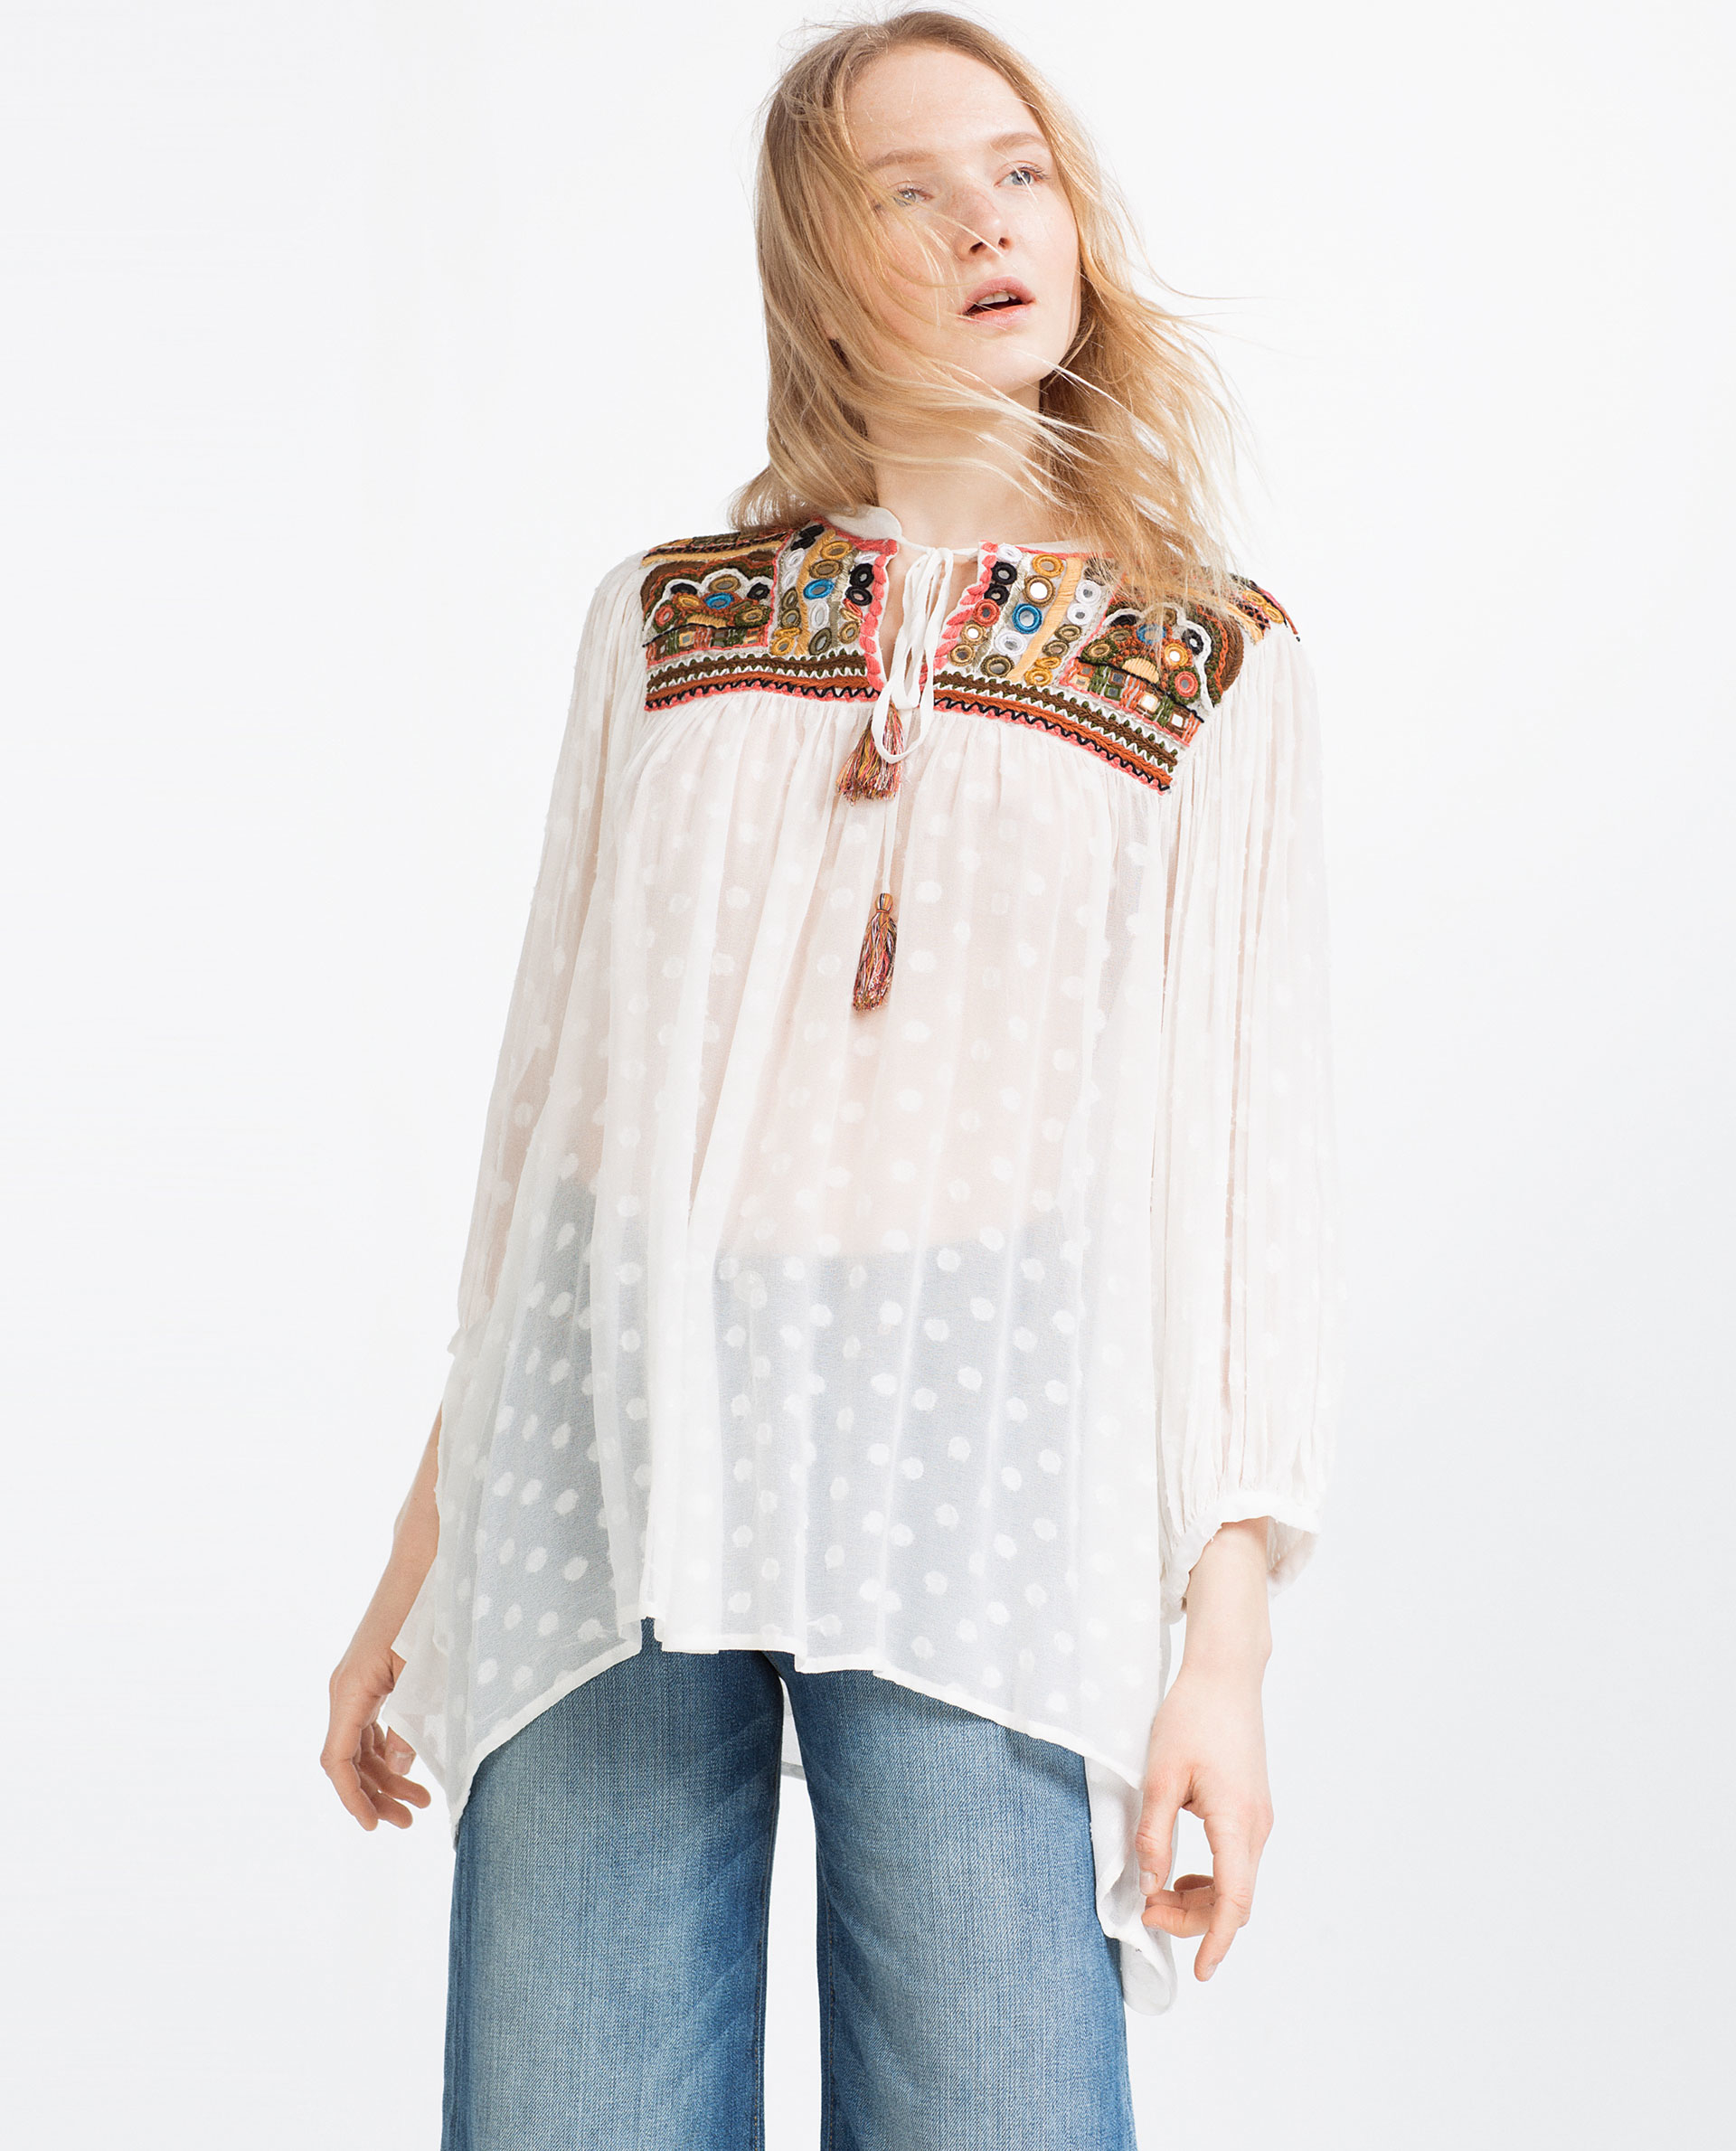 Zara Embroidered Blouse 116